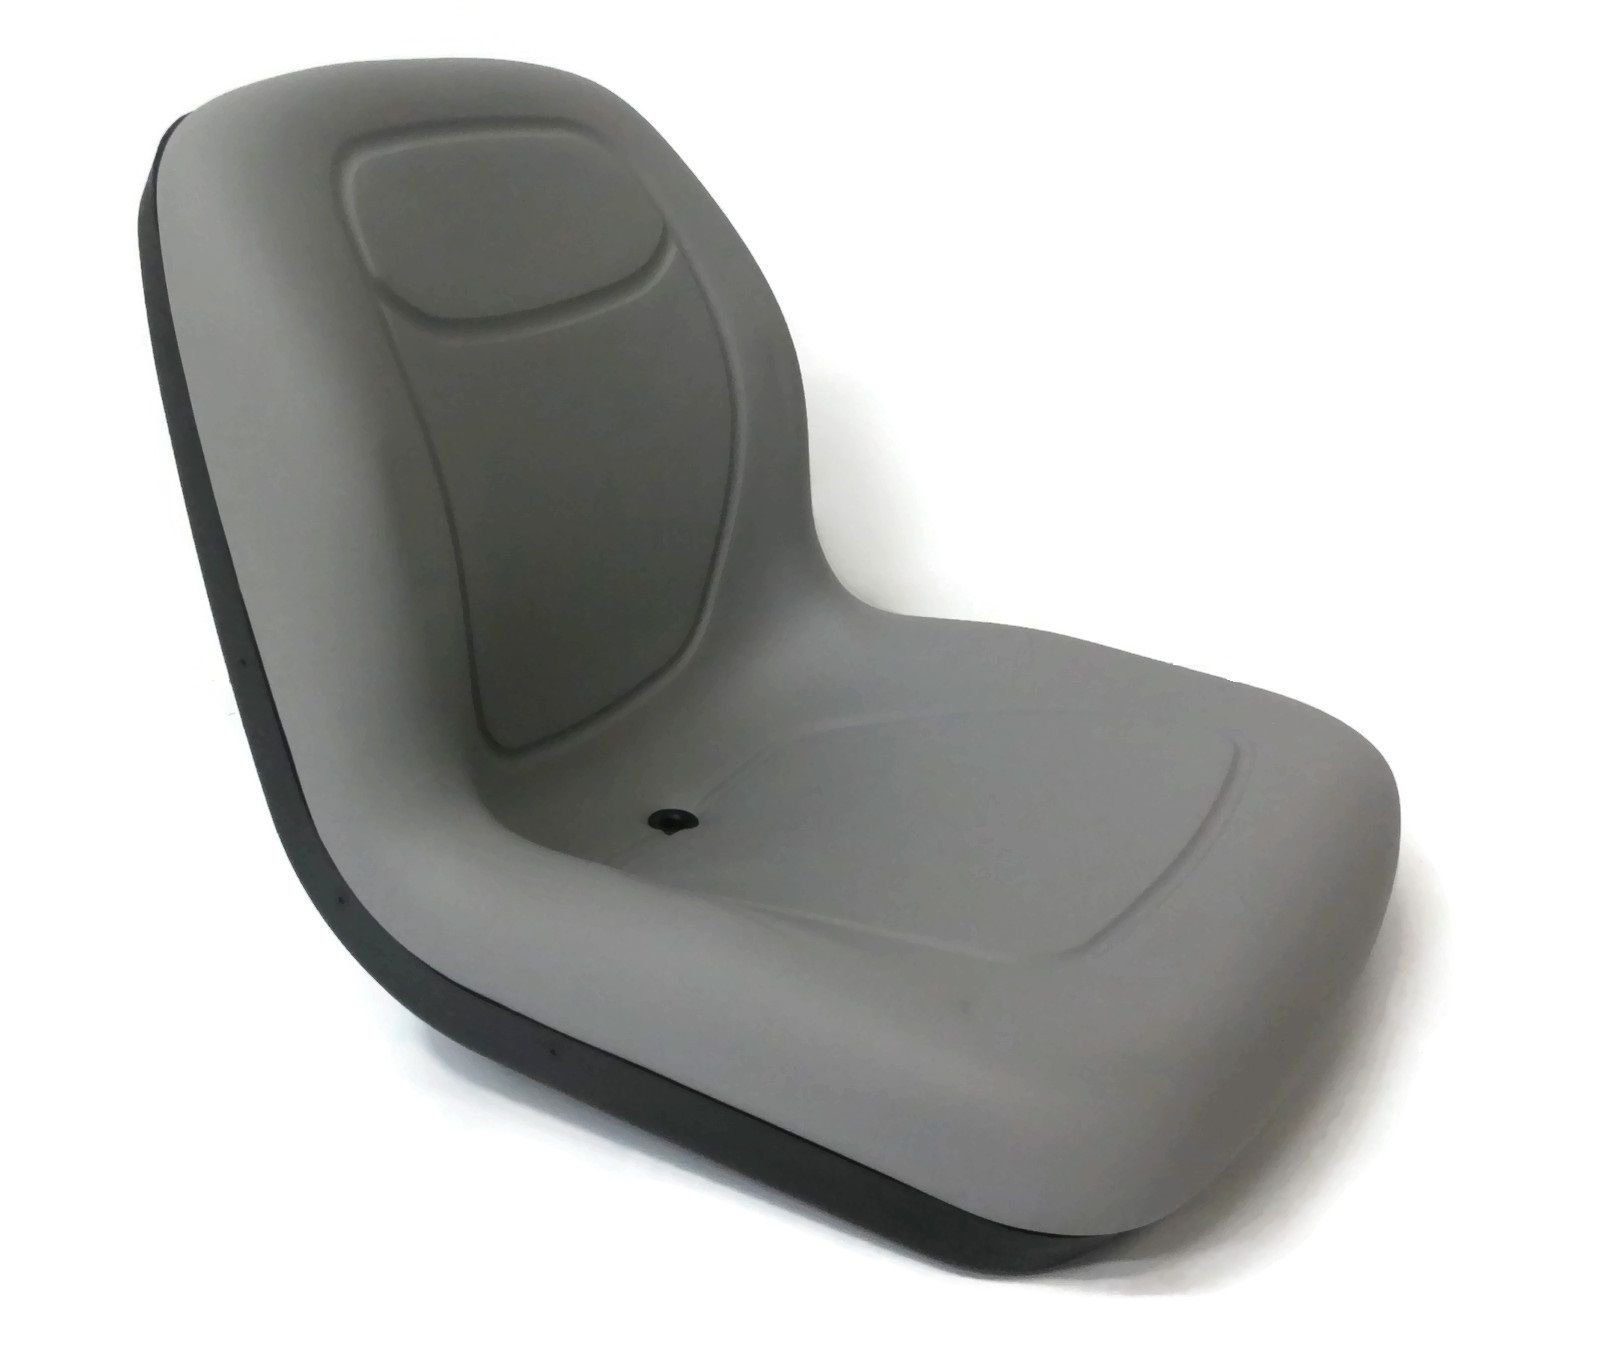 The ROP Shop New Grey HIGH Back SEAT for Komatsu Skid Steer Loader Made in The USA